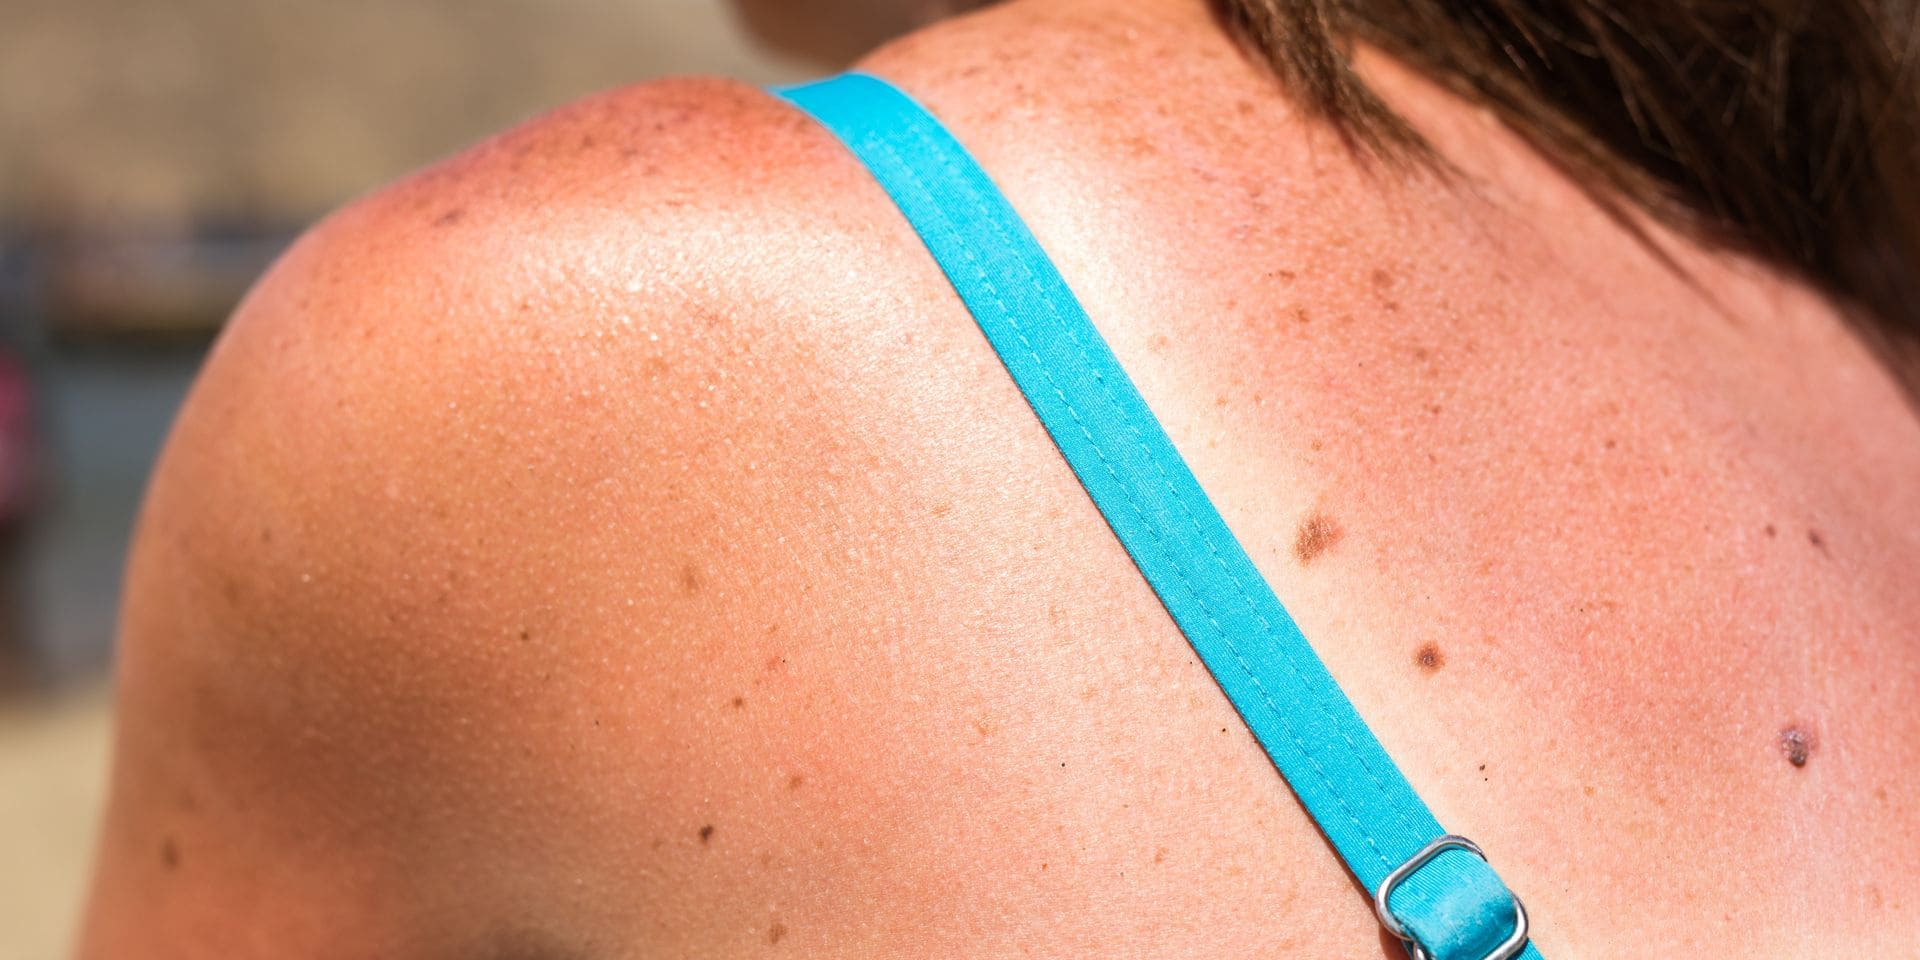 Sunburn,From,Beach,Sun,Light,On,The,Shoulder,And,Back